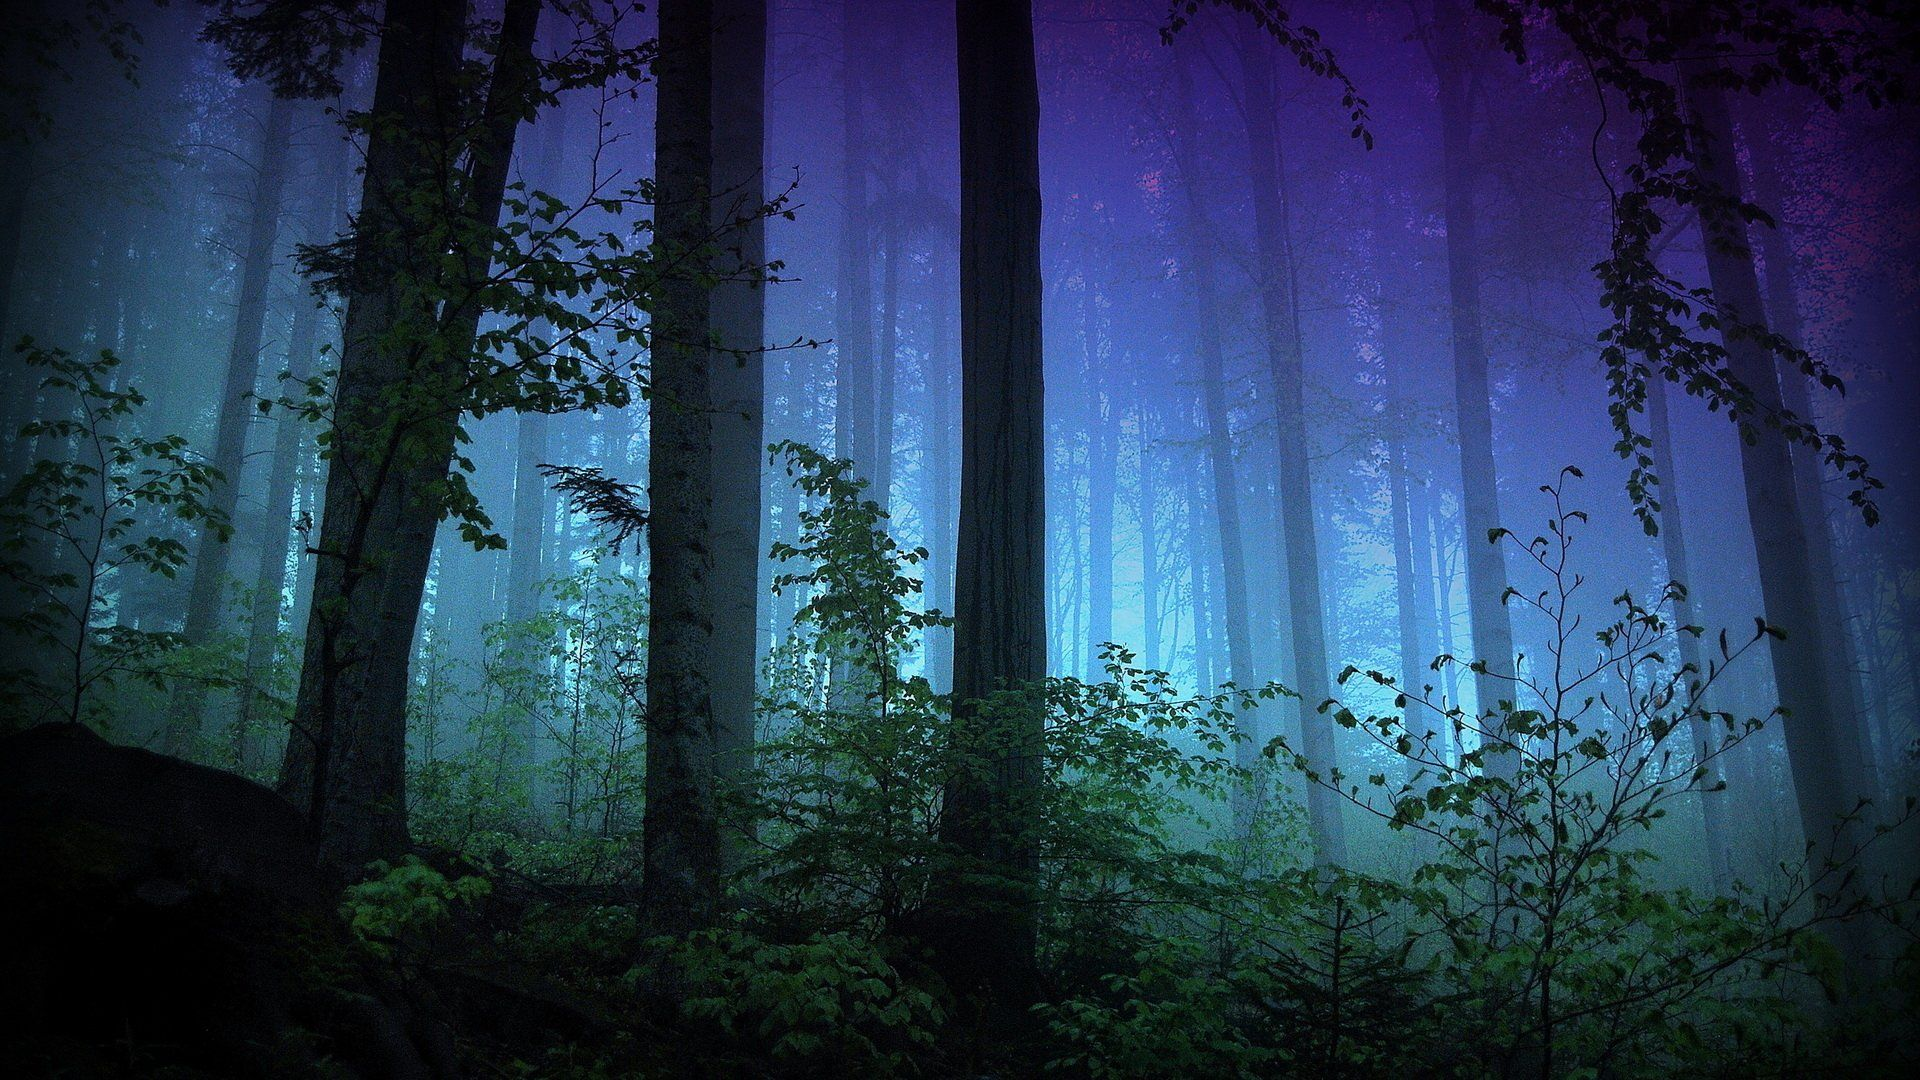 Foggy Forest Wallpapers Hd > Flip Wallpapers > Download